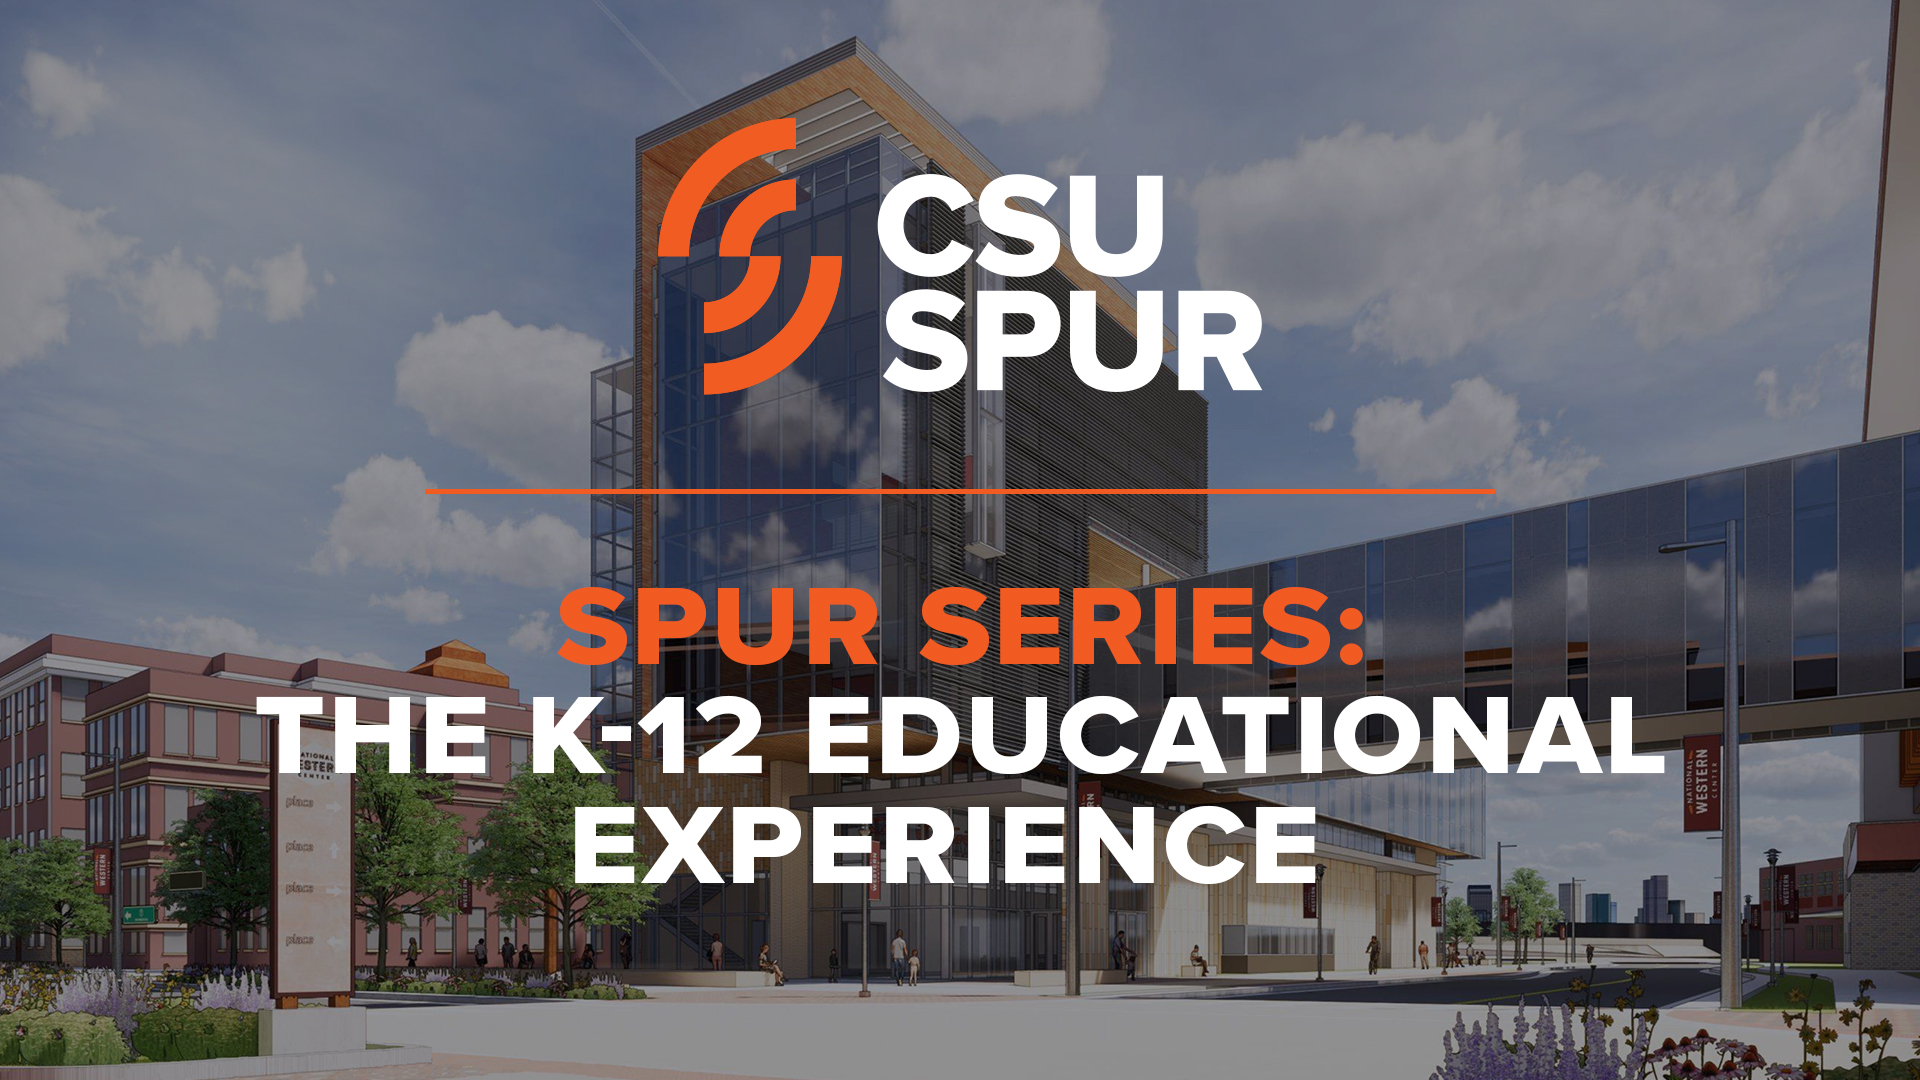 Image for Spur Series: The K-12 Educational Experience webinar